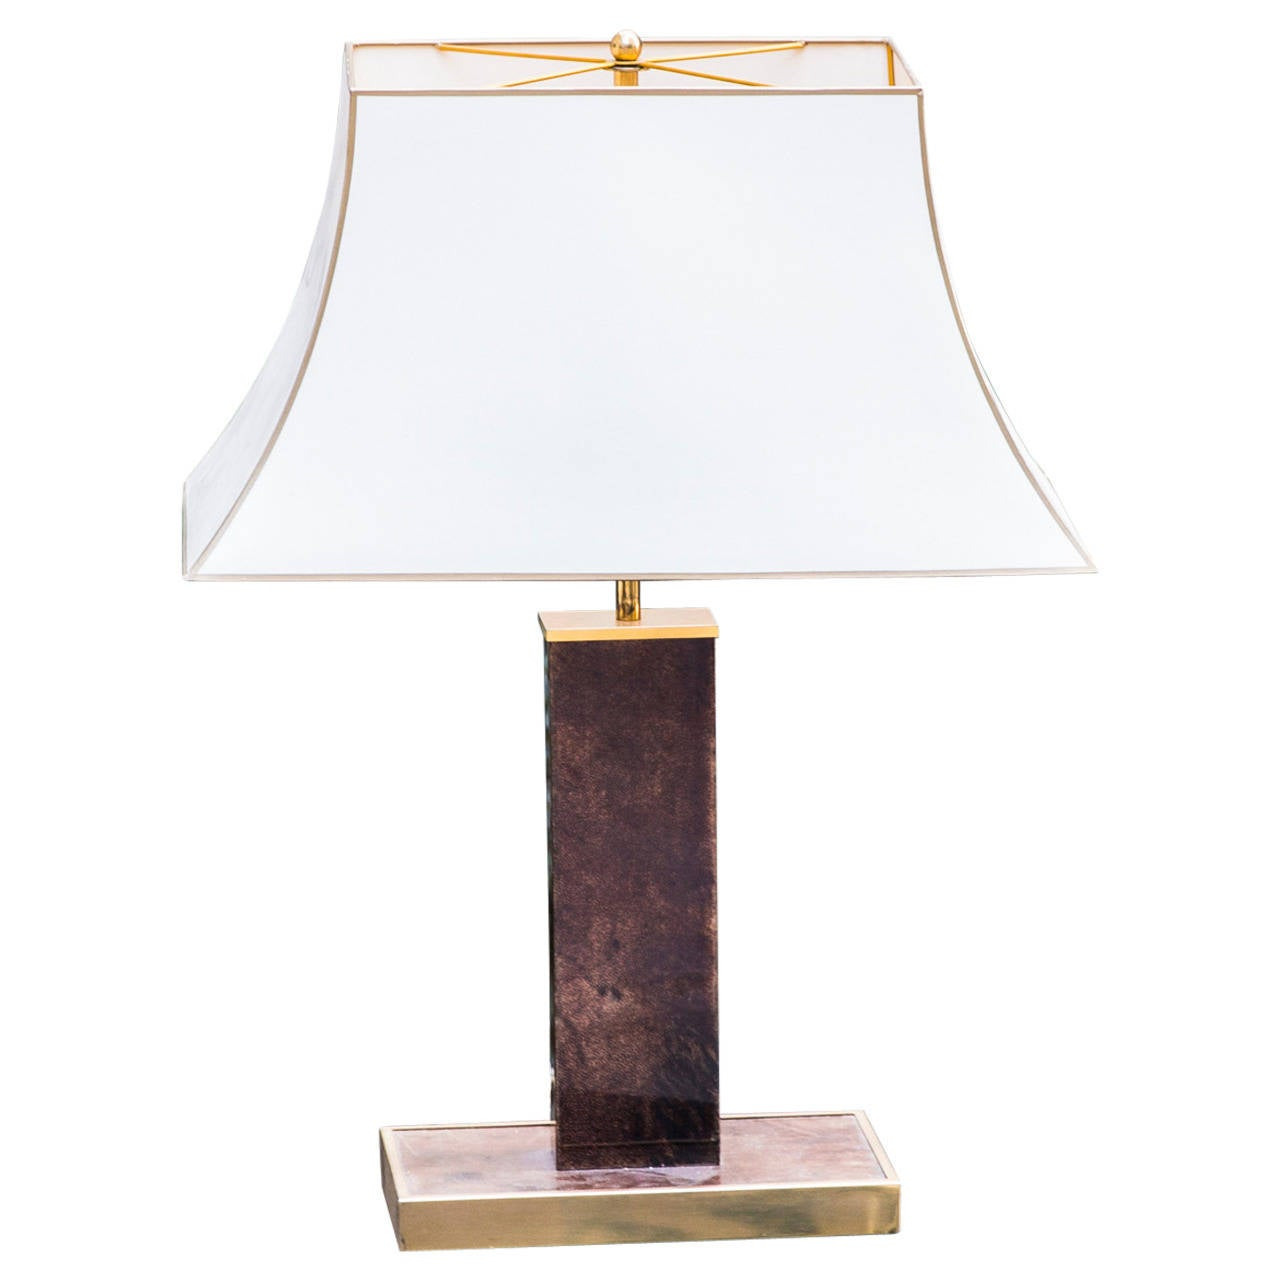 aldo tura table lamp brown goatskin silk shade for sale at 1stdibs. Black Bedroom Furniture Sets. Home Design Ideas